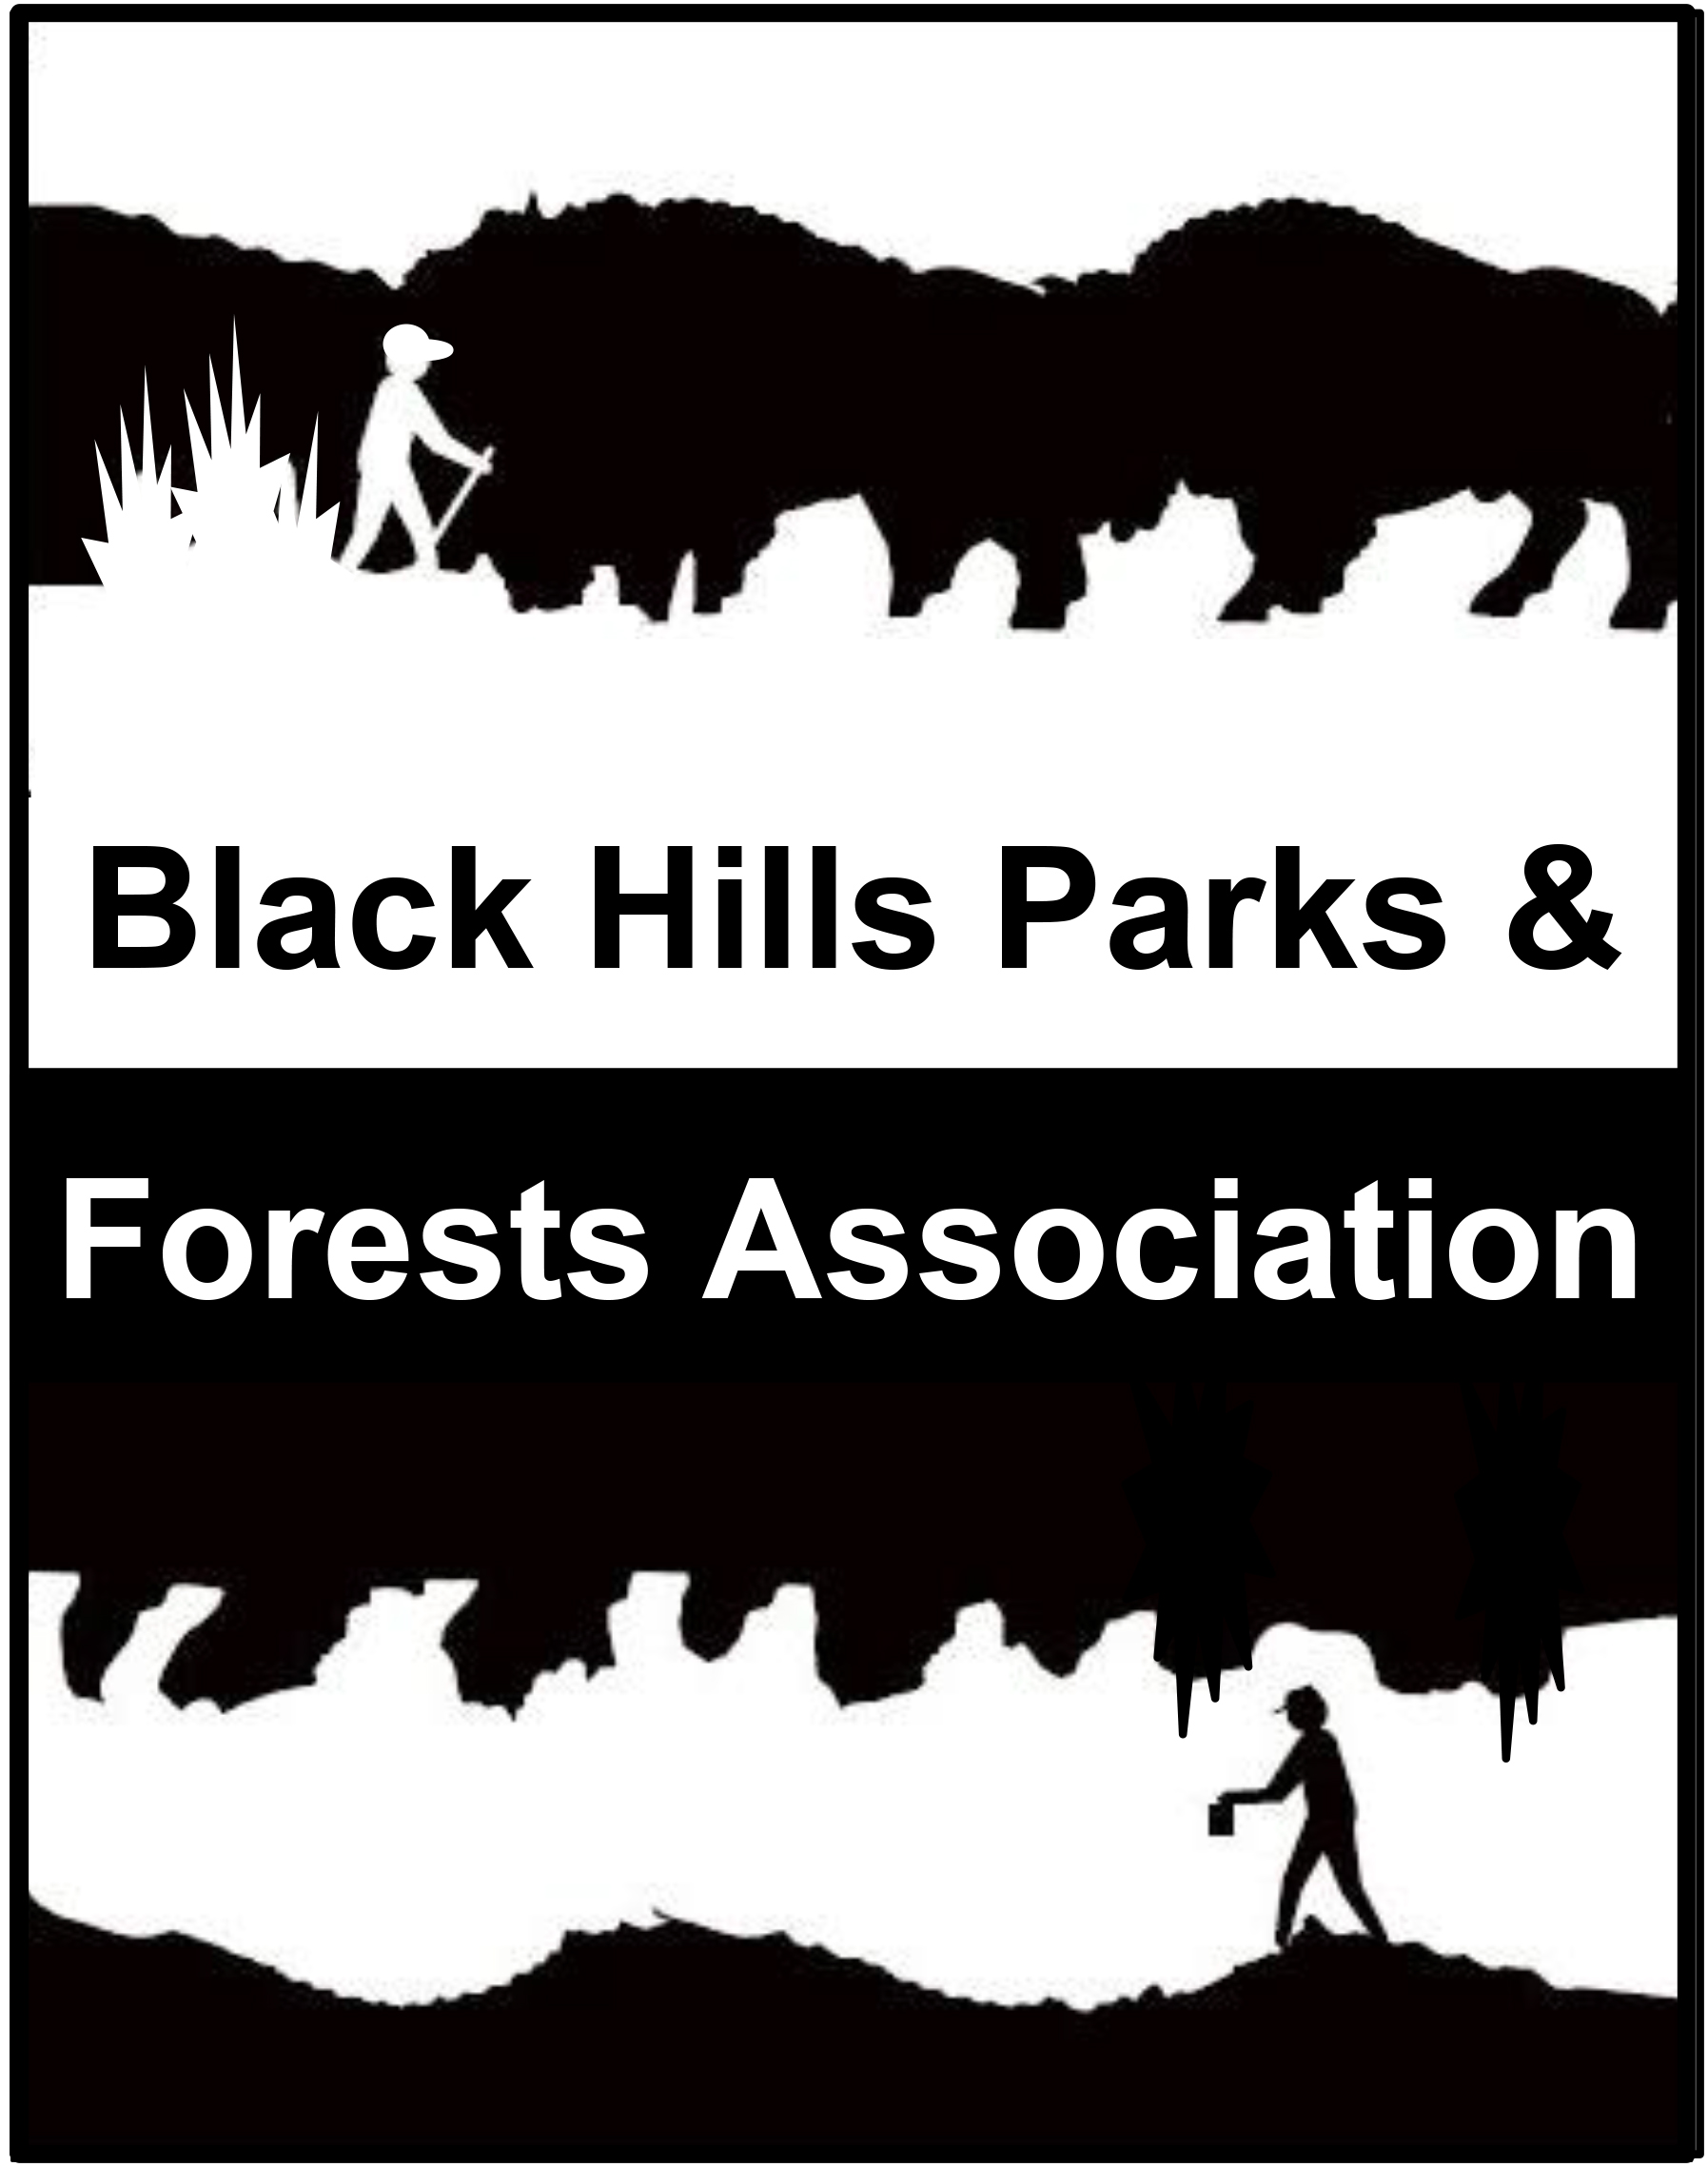 Black Hills Parks and Forests